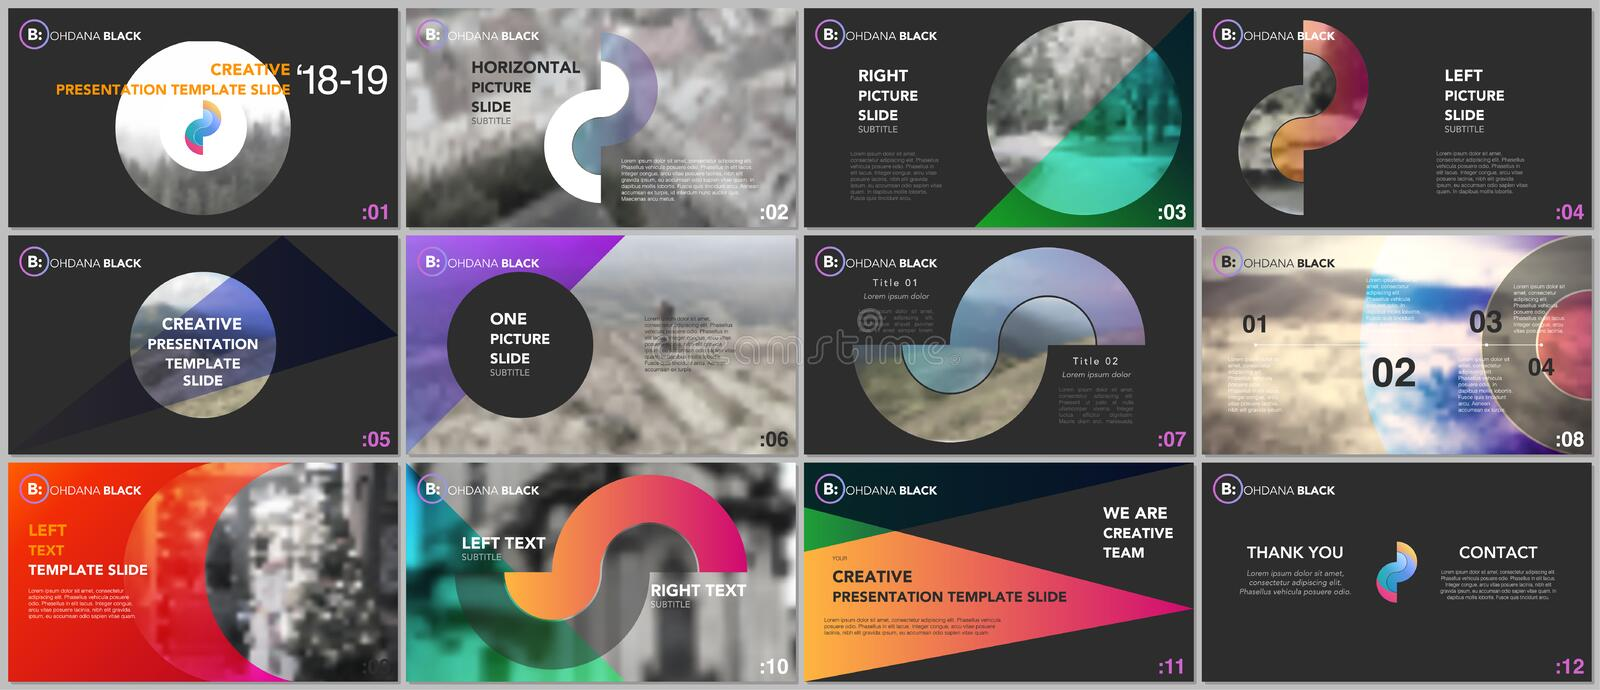 Clean and minimal presentation templates. Colorful elements on a black background. royalty free illustration